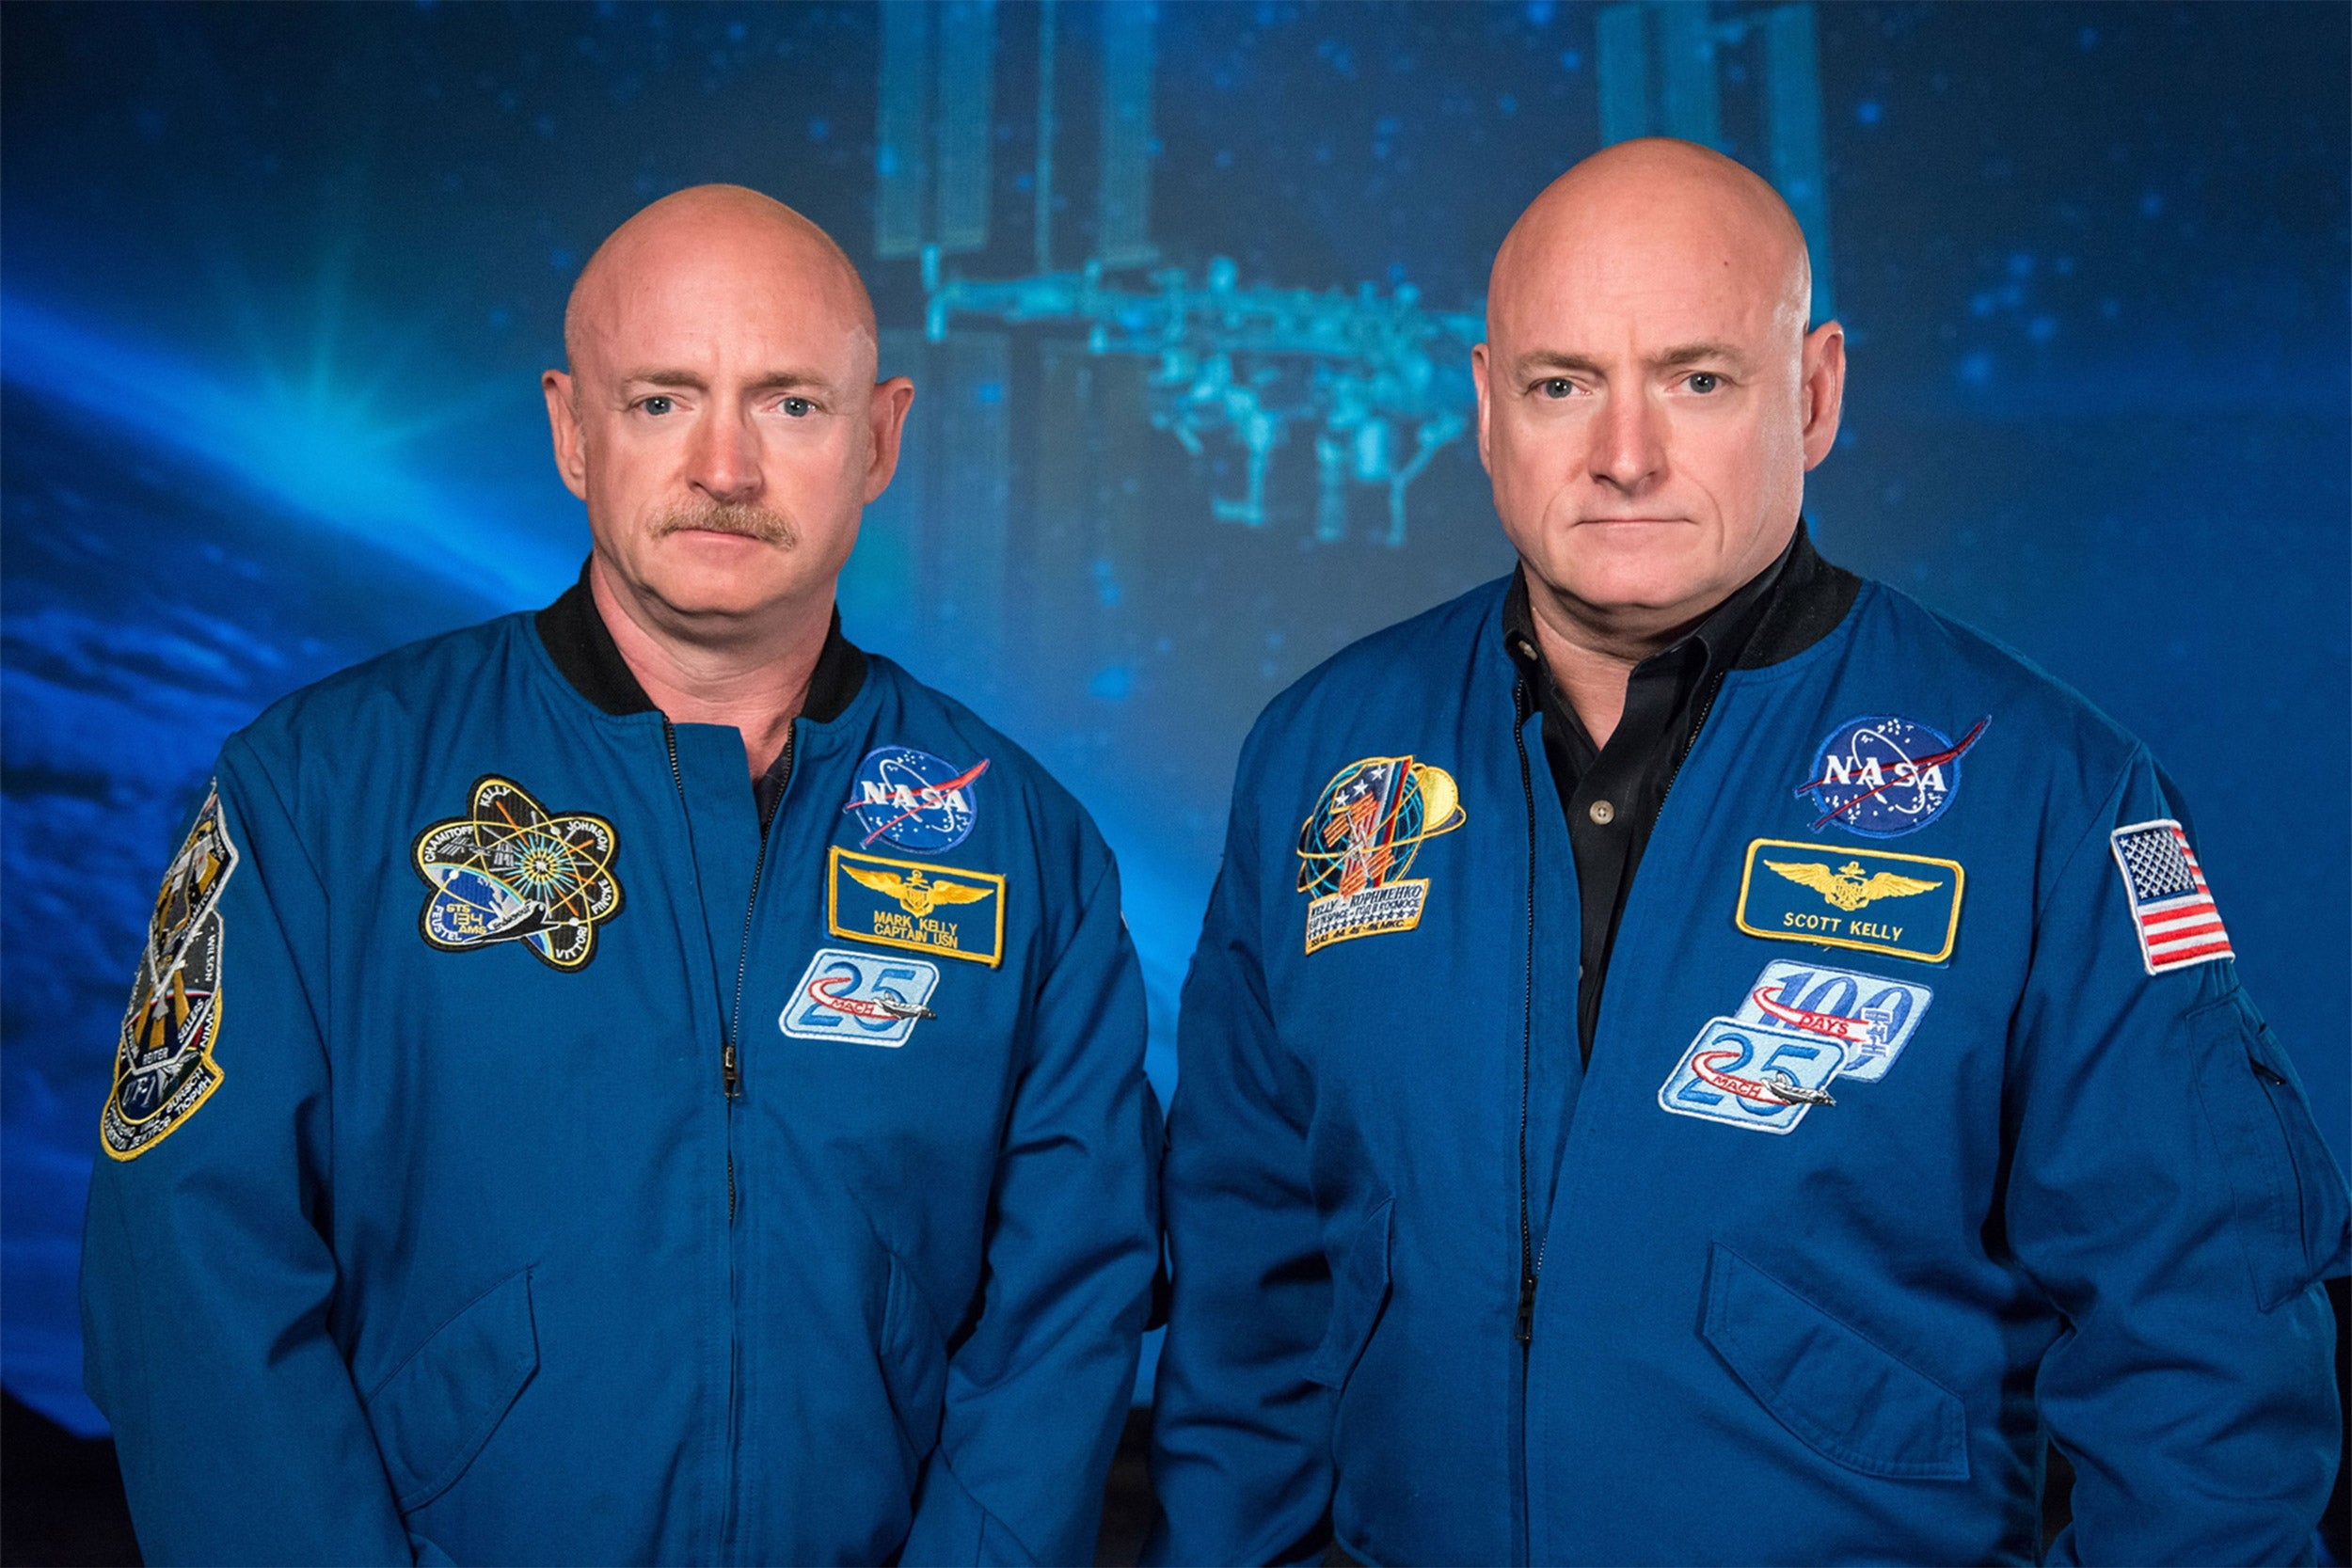 Astronaut Scott Kelly along with his brother, former Astronaut Mark Kelly